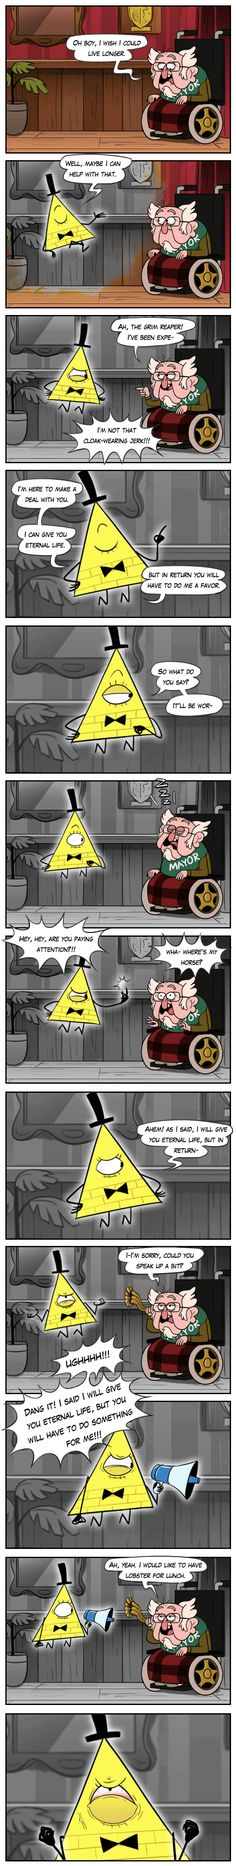 Nevermi nd by markmak>>>>HAHA BILL! CAUSE YOURE A LOOOOOOSER A LOOOOOSER>>>> HAHAHAHAHAH>> AND THAT'S WHY THE MAYOR DIED